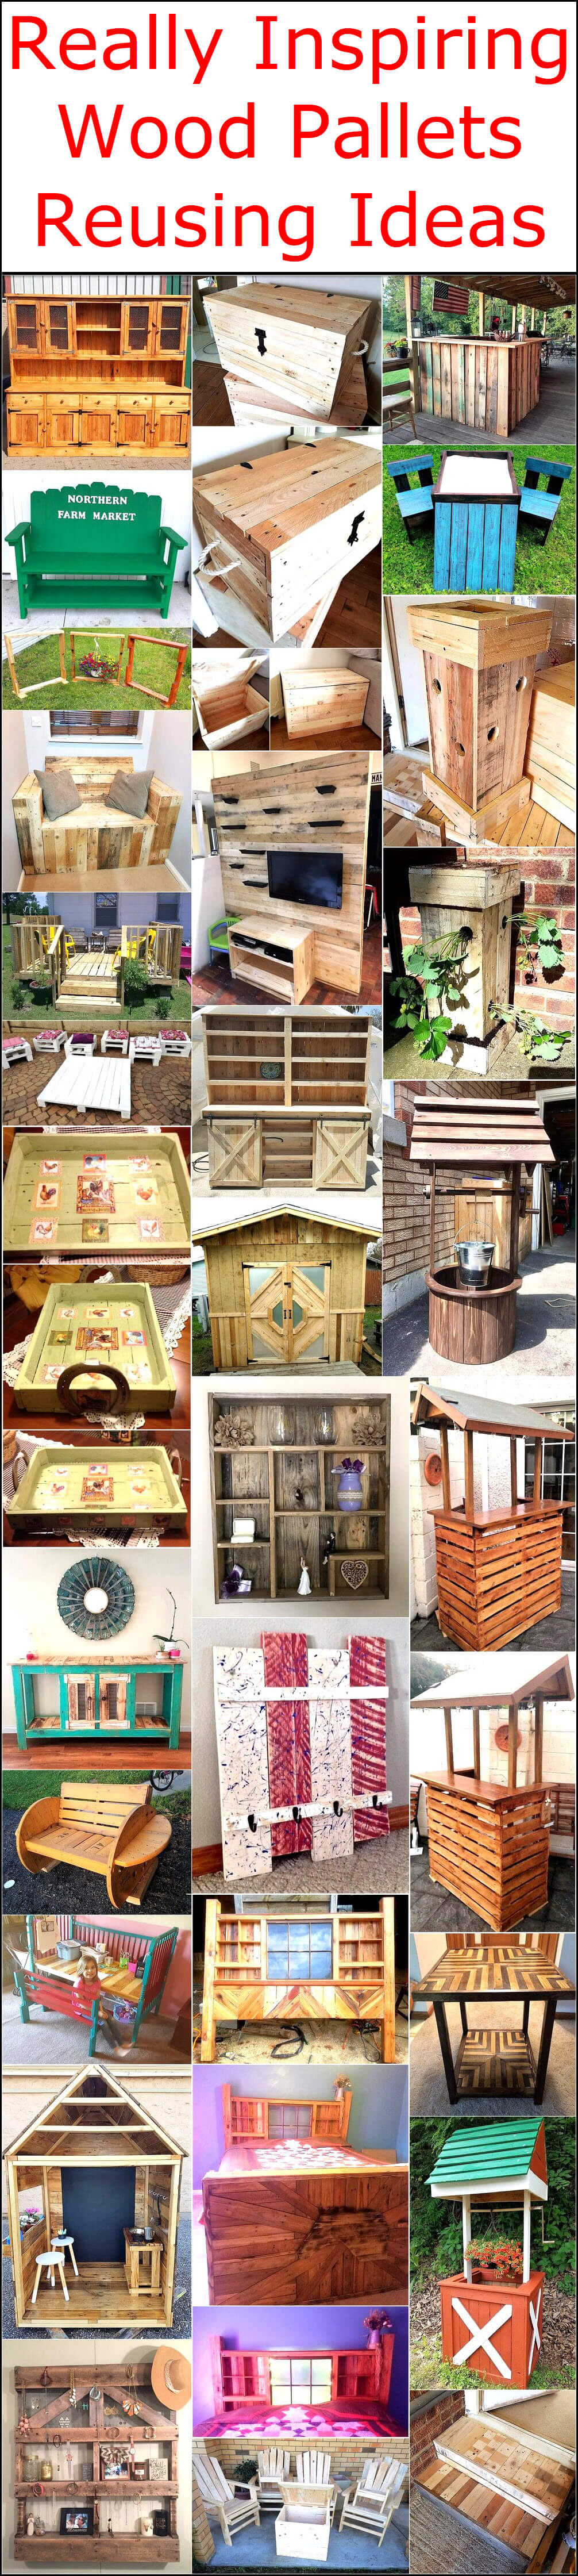 Really Inspiring Wood Pallets Reusing Ideas